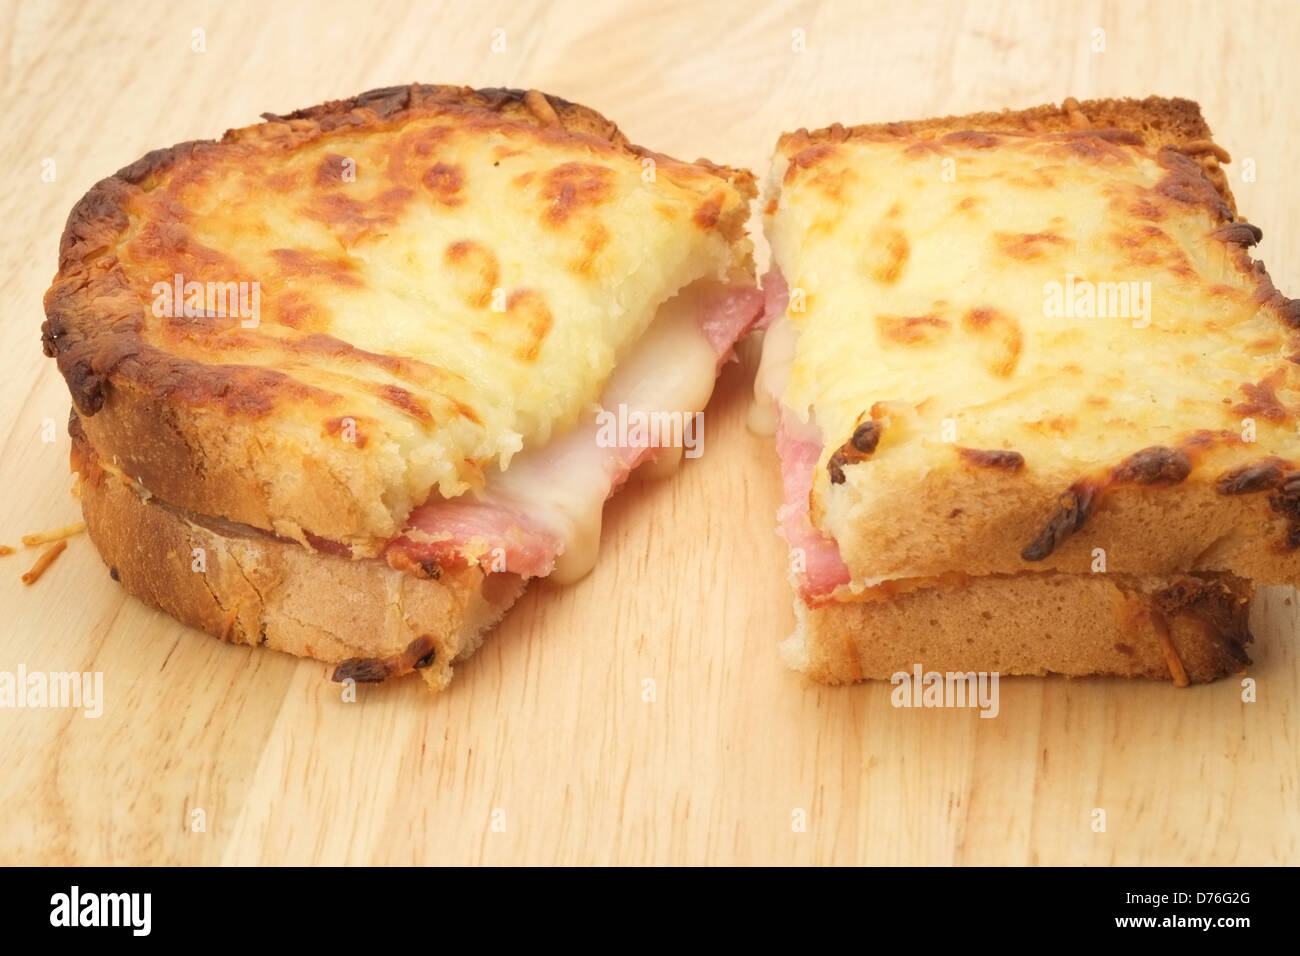 A toasted and cut open Croque Monsieur sandwich with melted cheese and ham - Stock Image